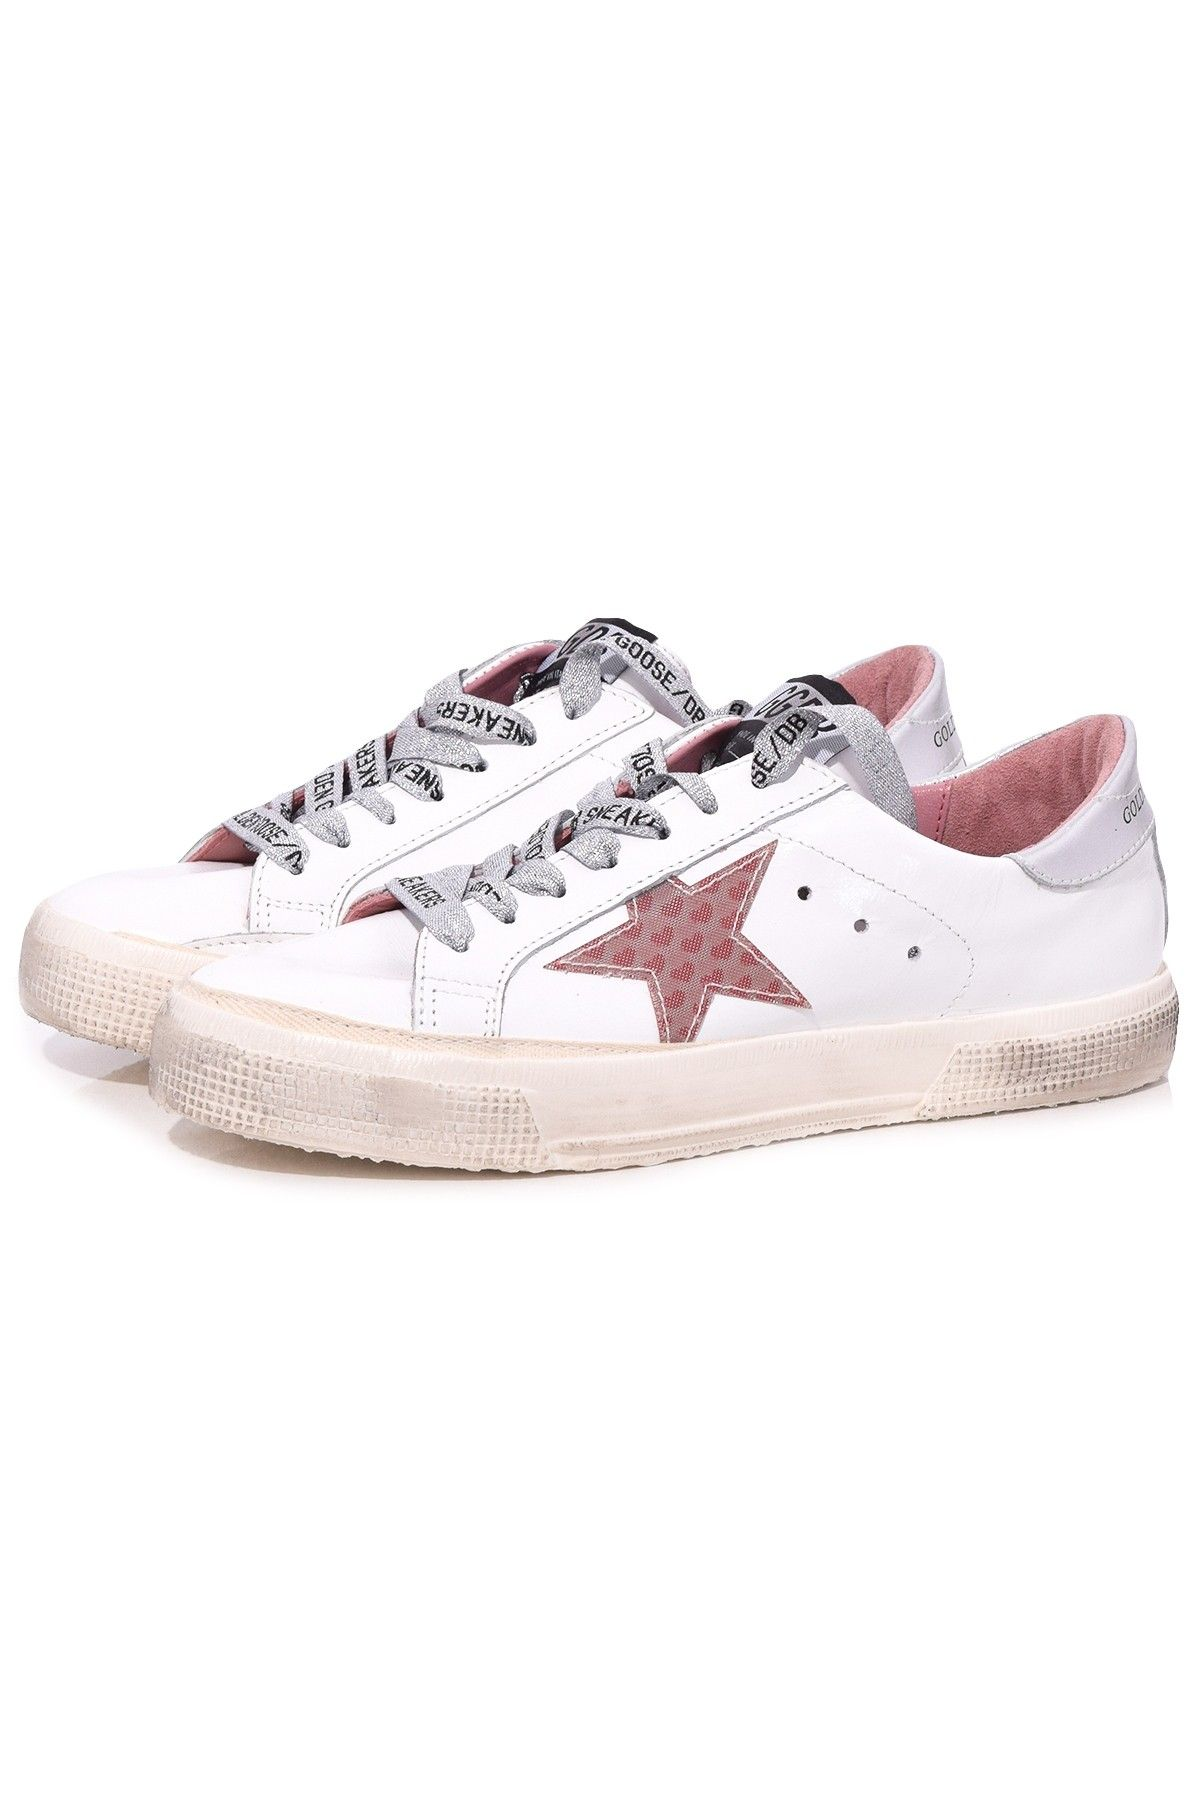 655848e29eb4 Golden Goose May Sneaker in White Shiny Leather/3D Hearts | Hampden ...